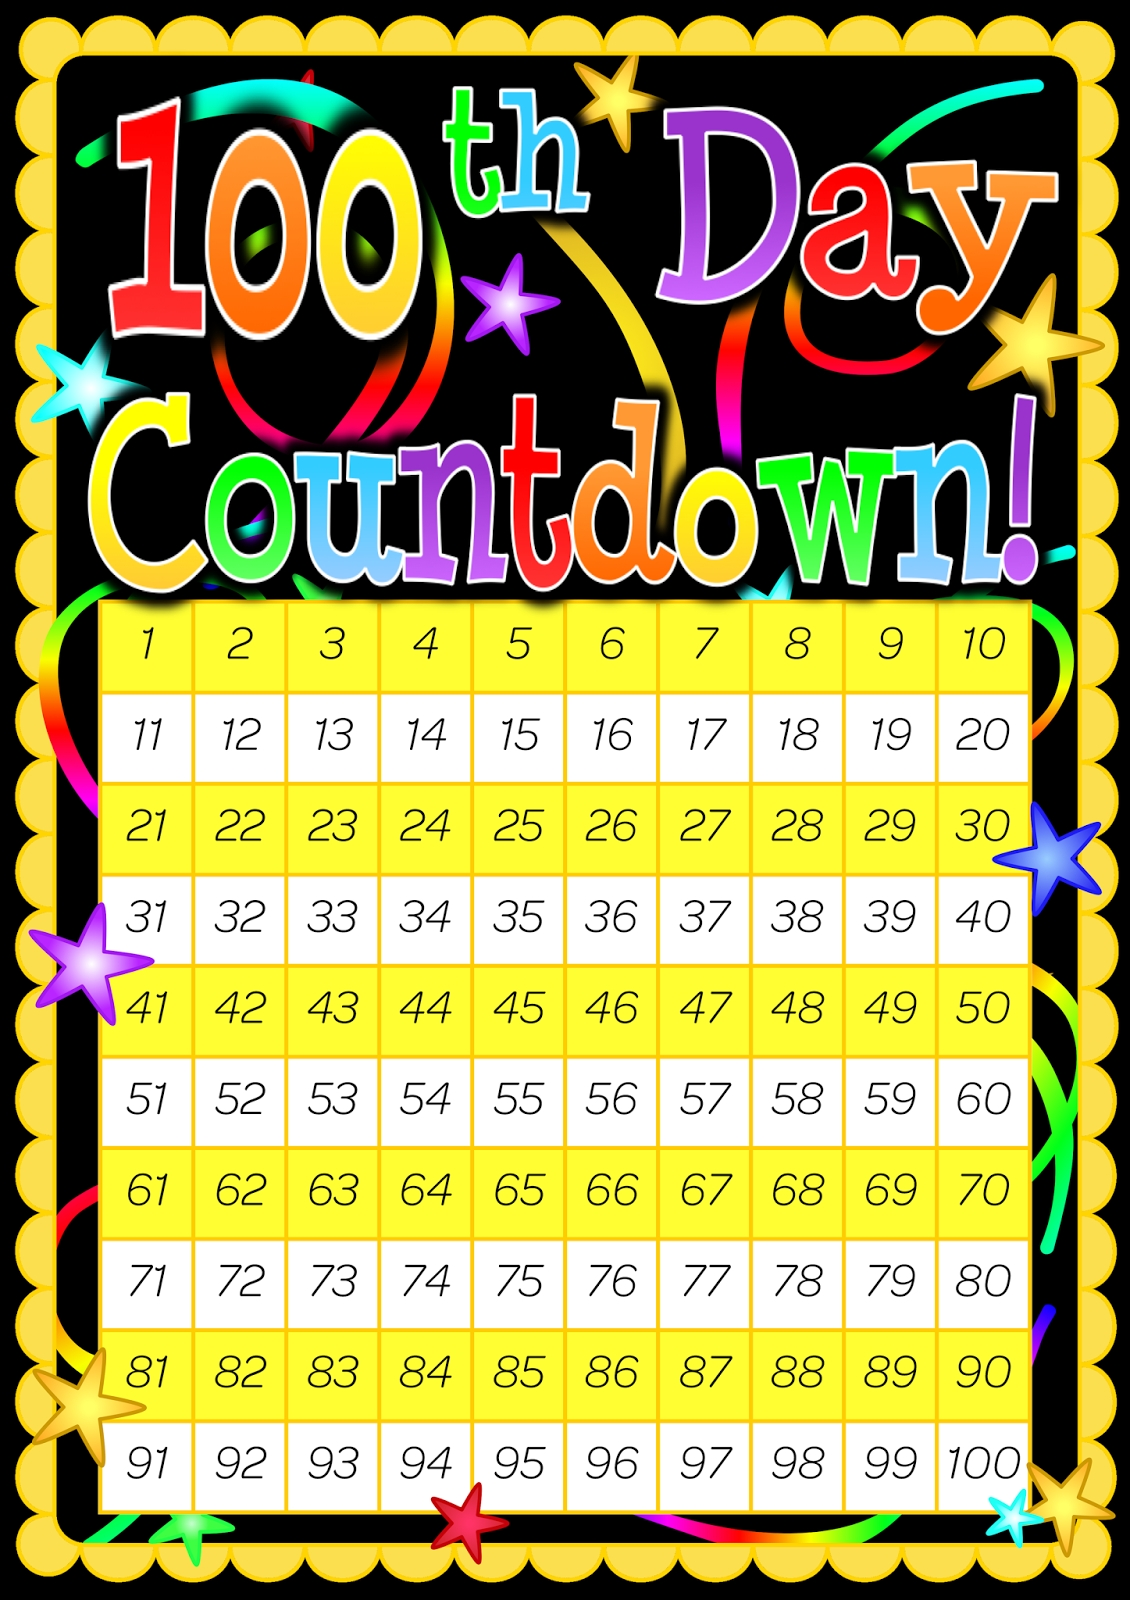 100 Day Countdown Poster. Included Is A 200 Day Countdown Poster_Countdown Calendar 100 Days